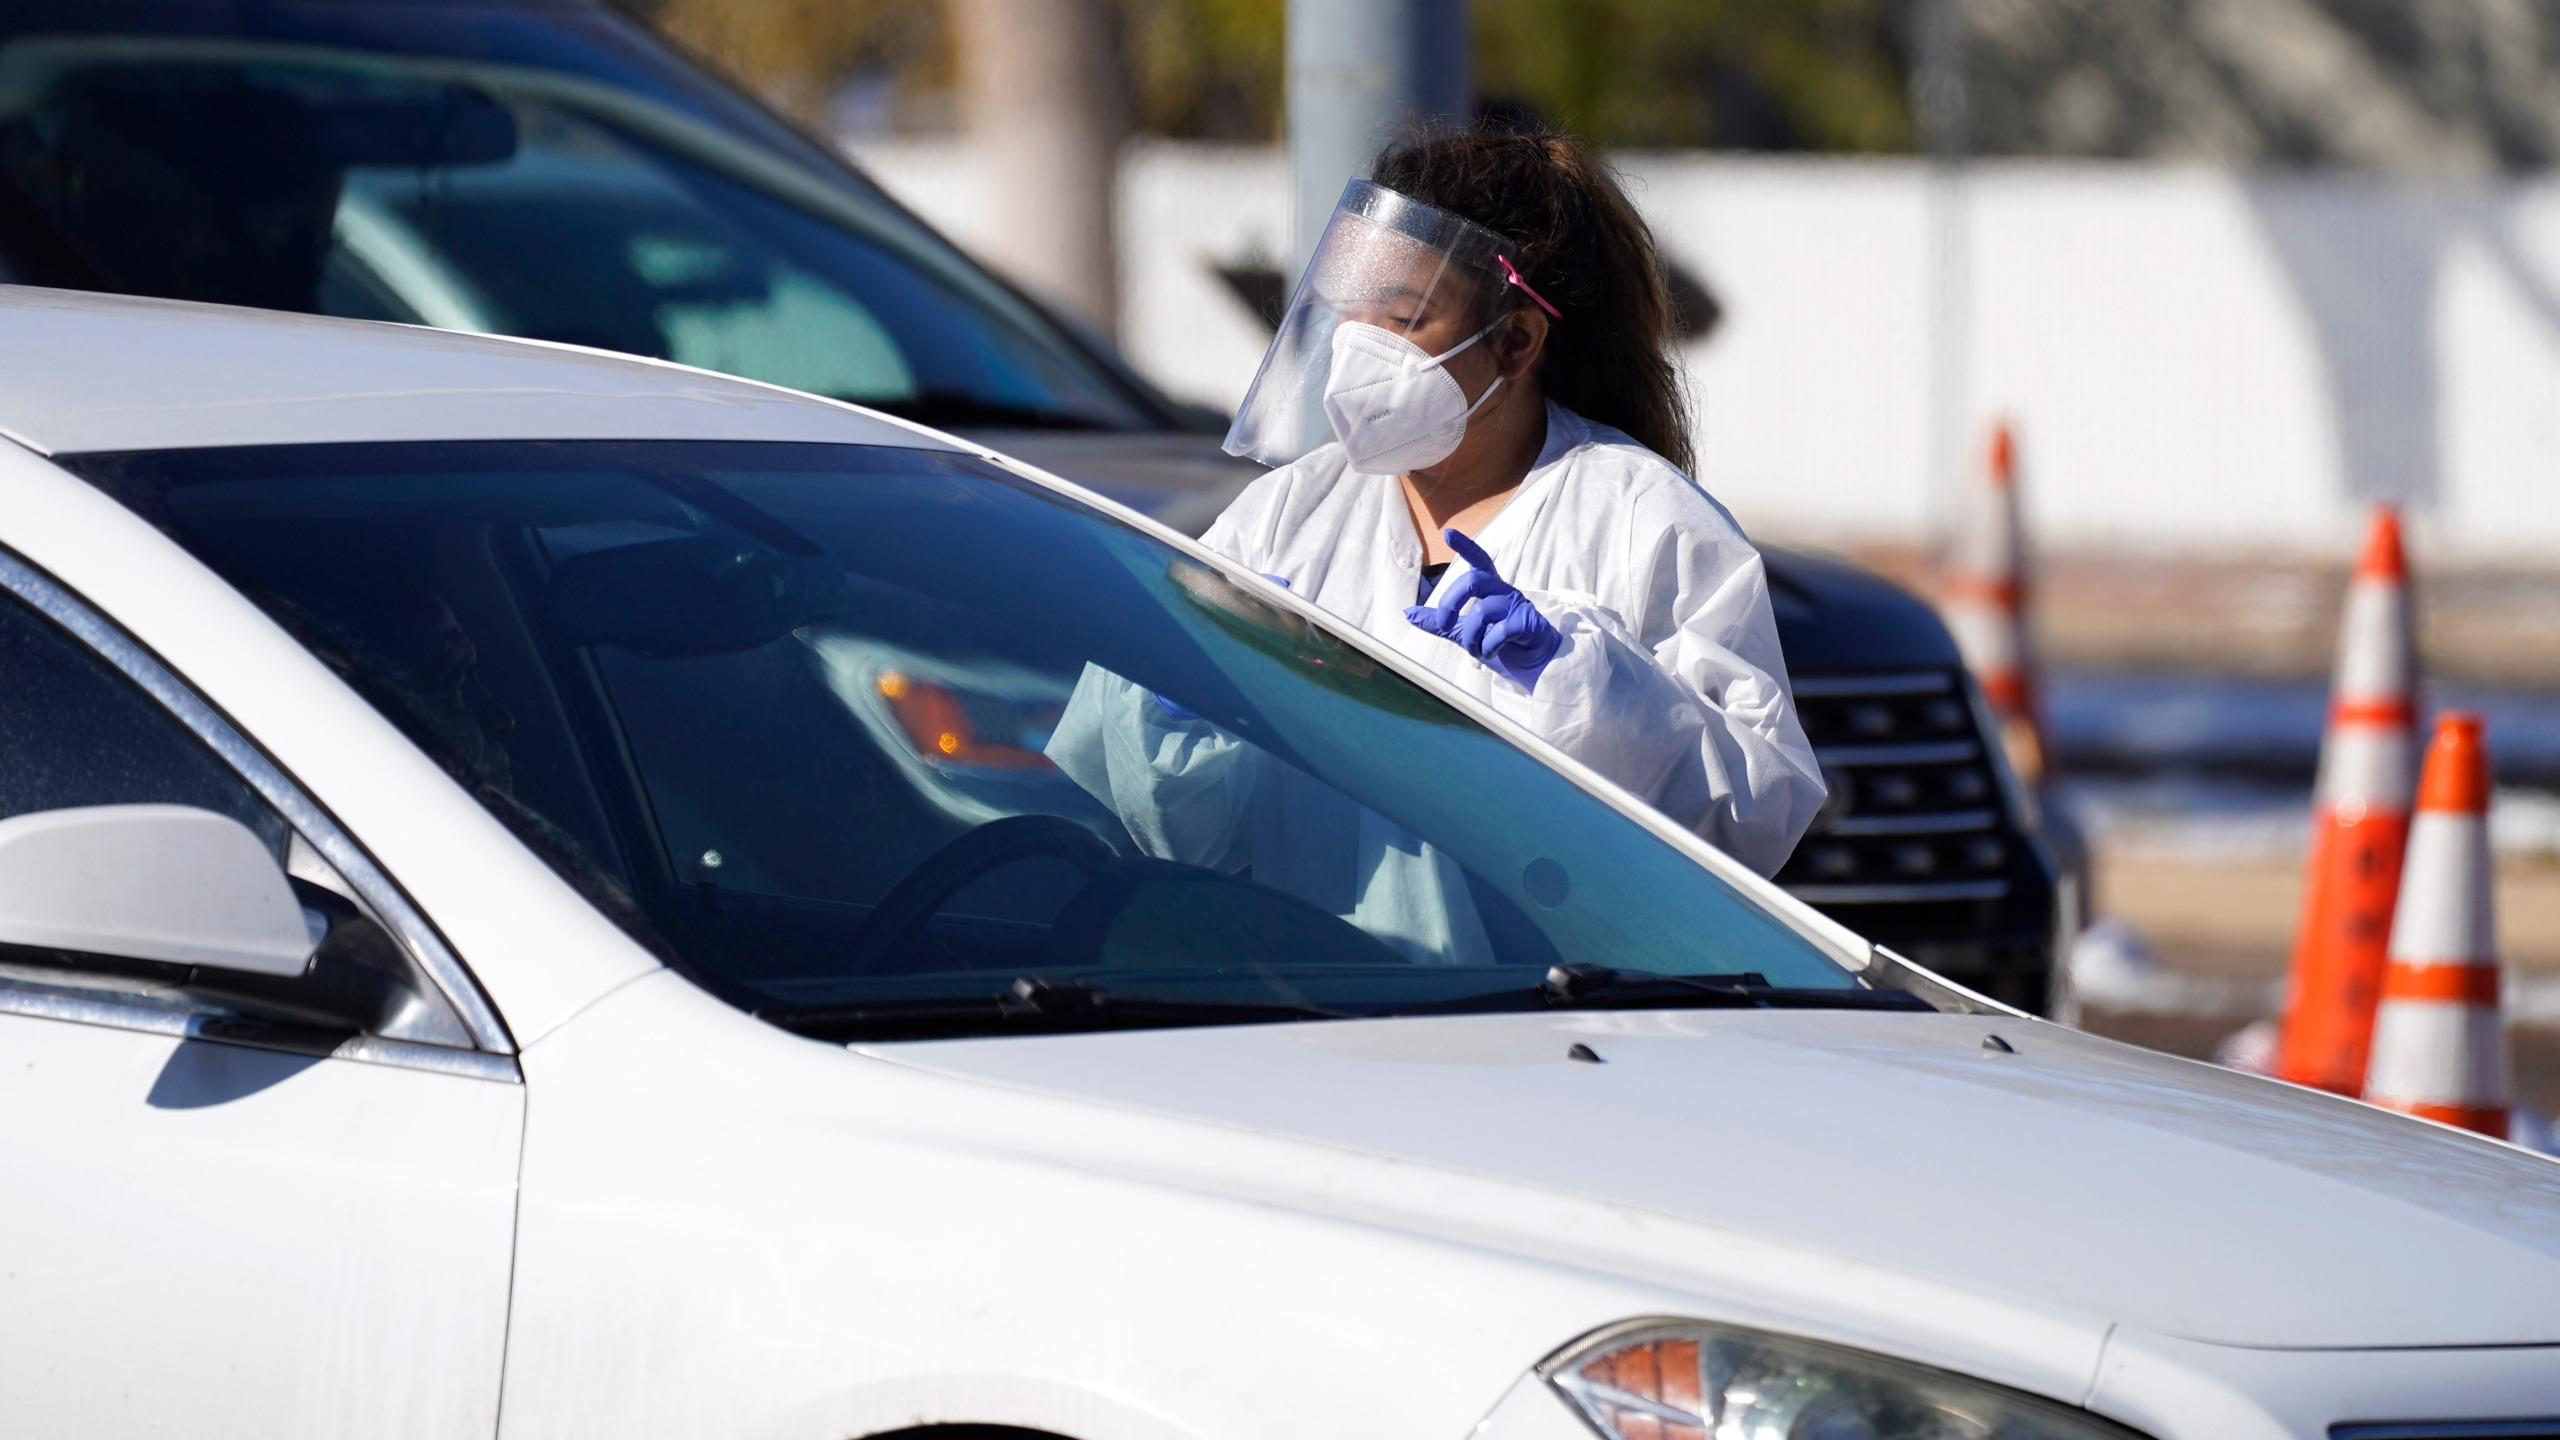 A tester talks to a motorist before administering a swab test at a drive-in, COVID-19 testing site Tuesday, Oct. 27, 2020, in Federal Heights, Colo.(AP Photo/David Zalubowski)